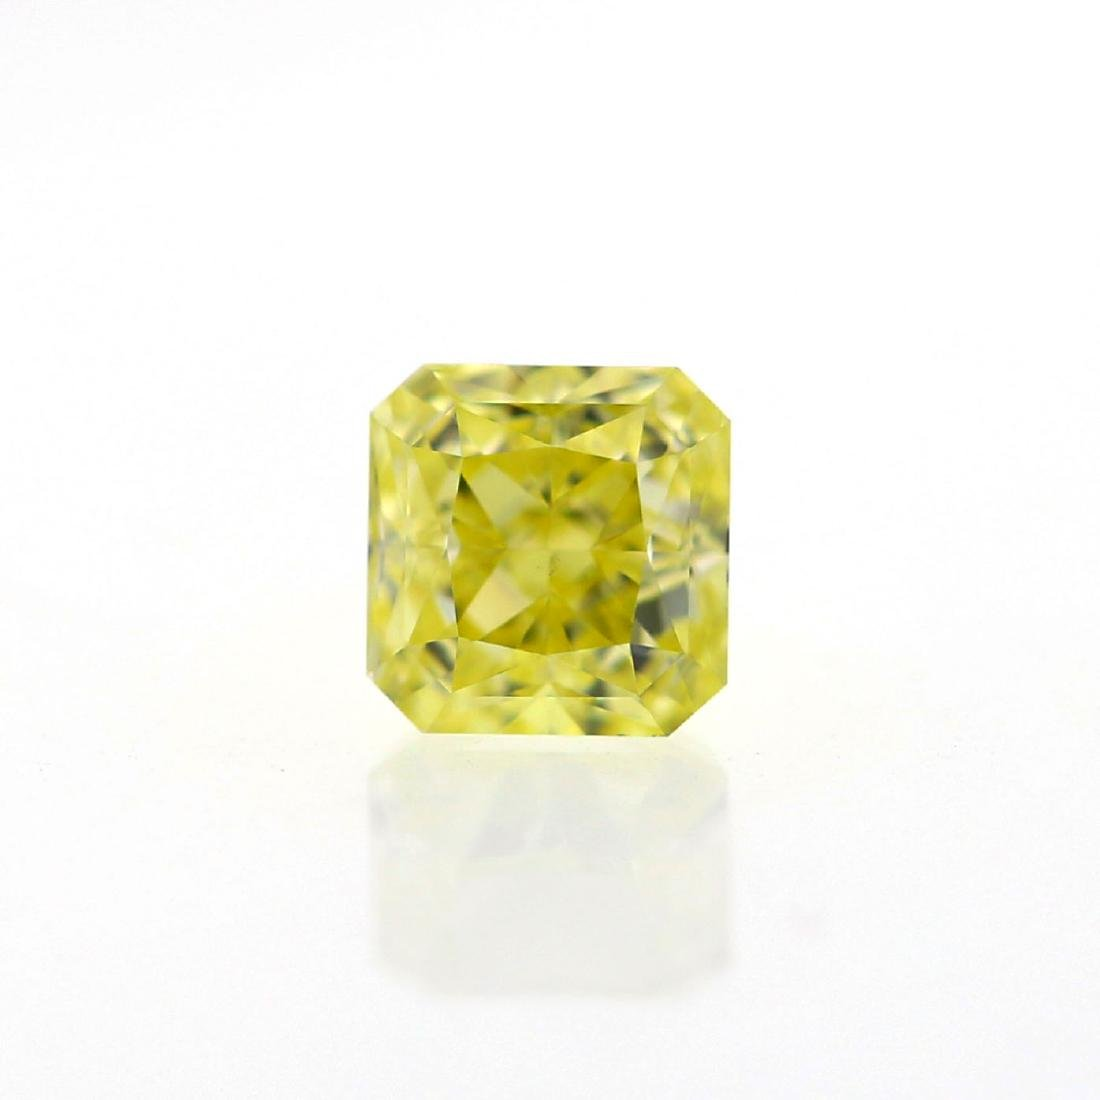 Natural Fancy Yellow 0.73 ct Radiant VS2 Diamond, GIA